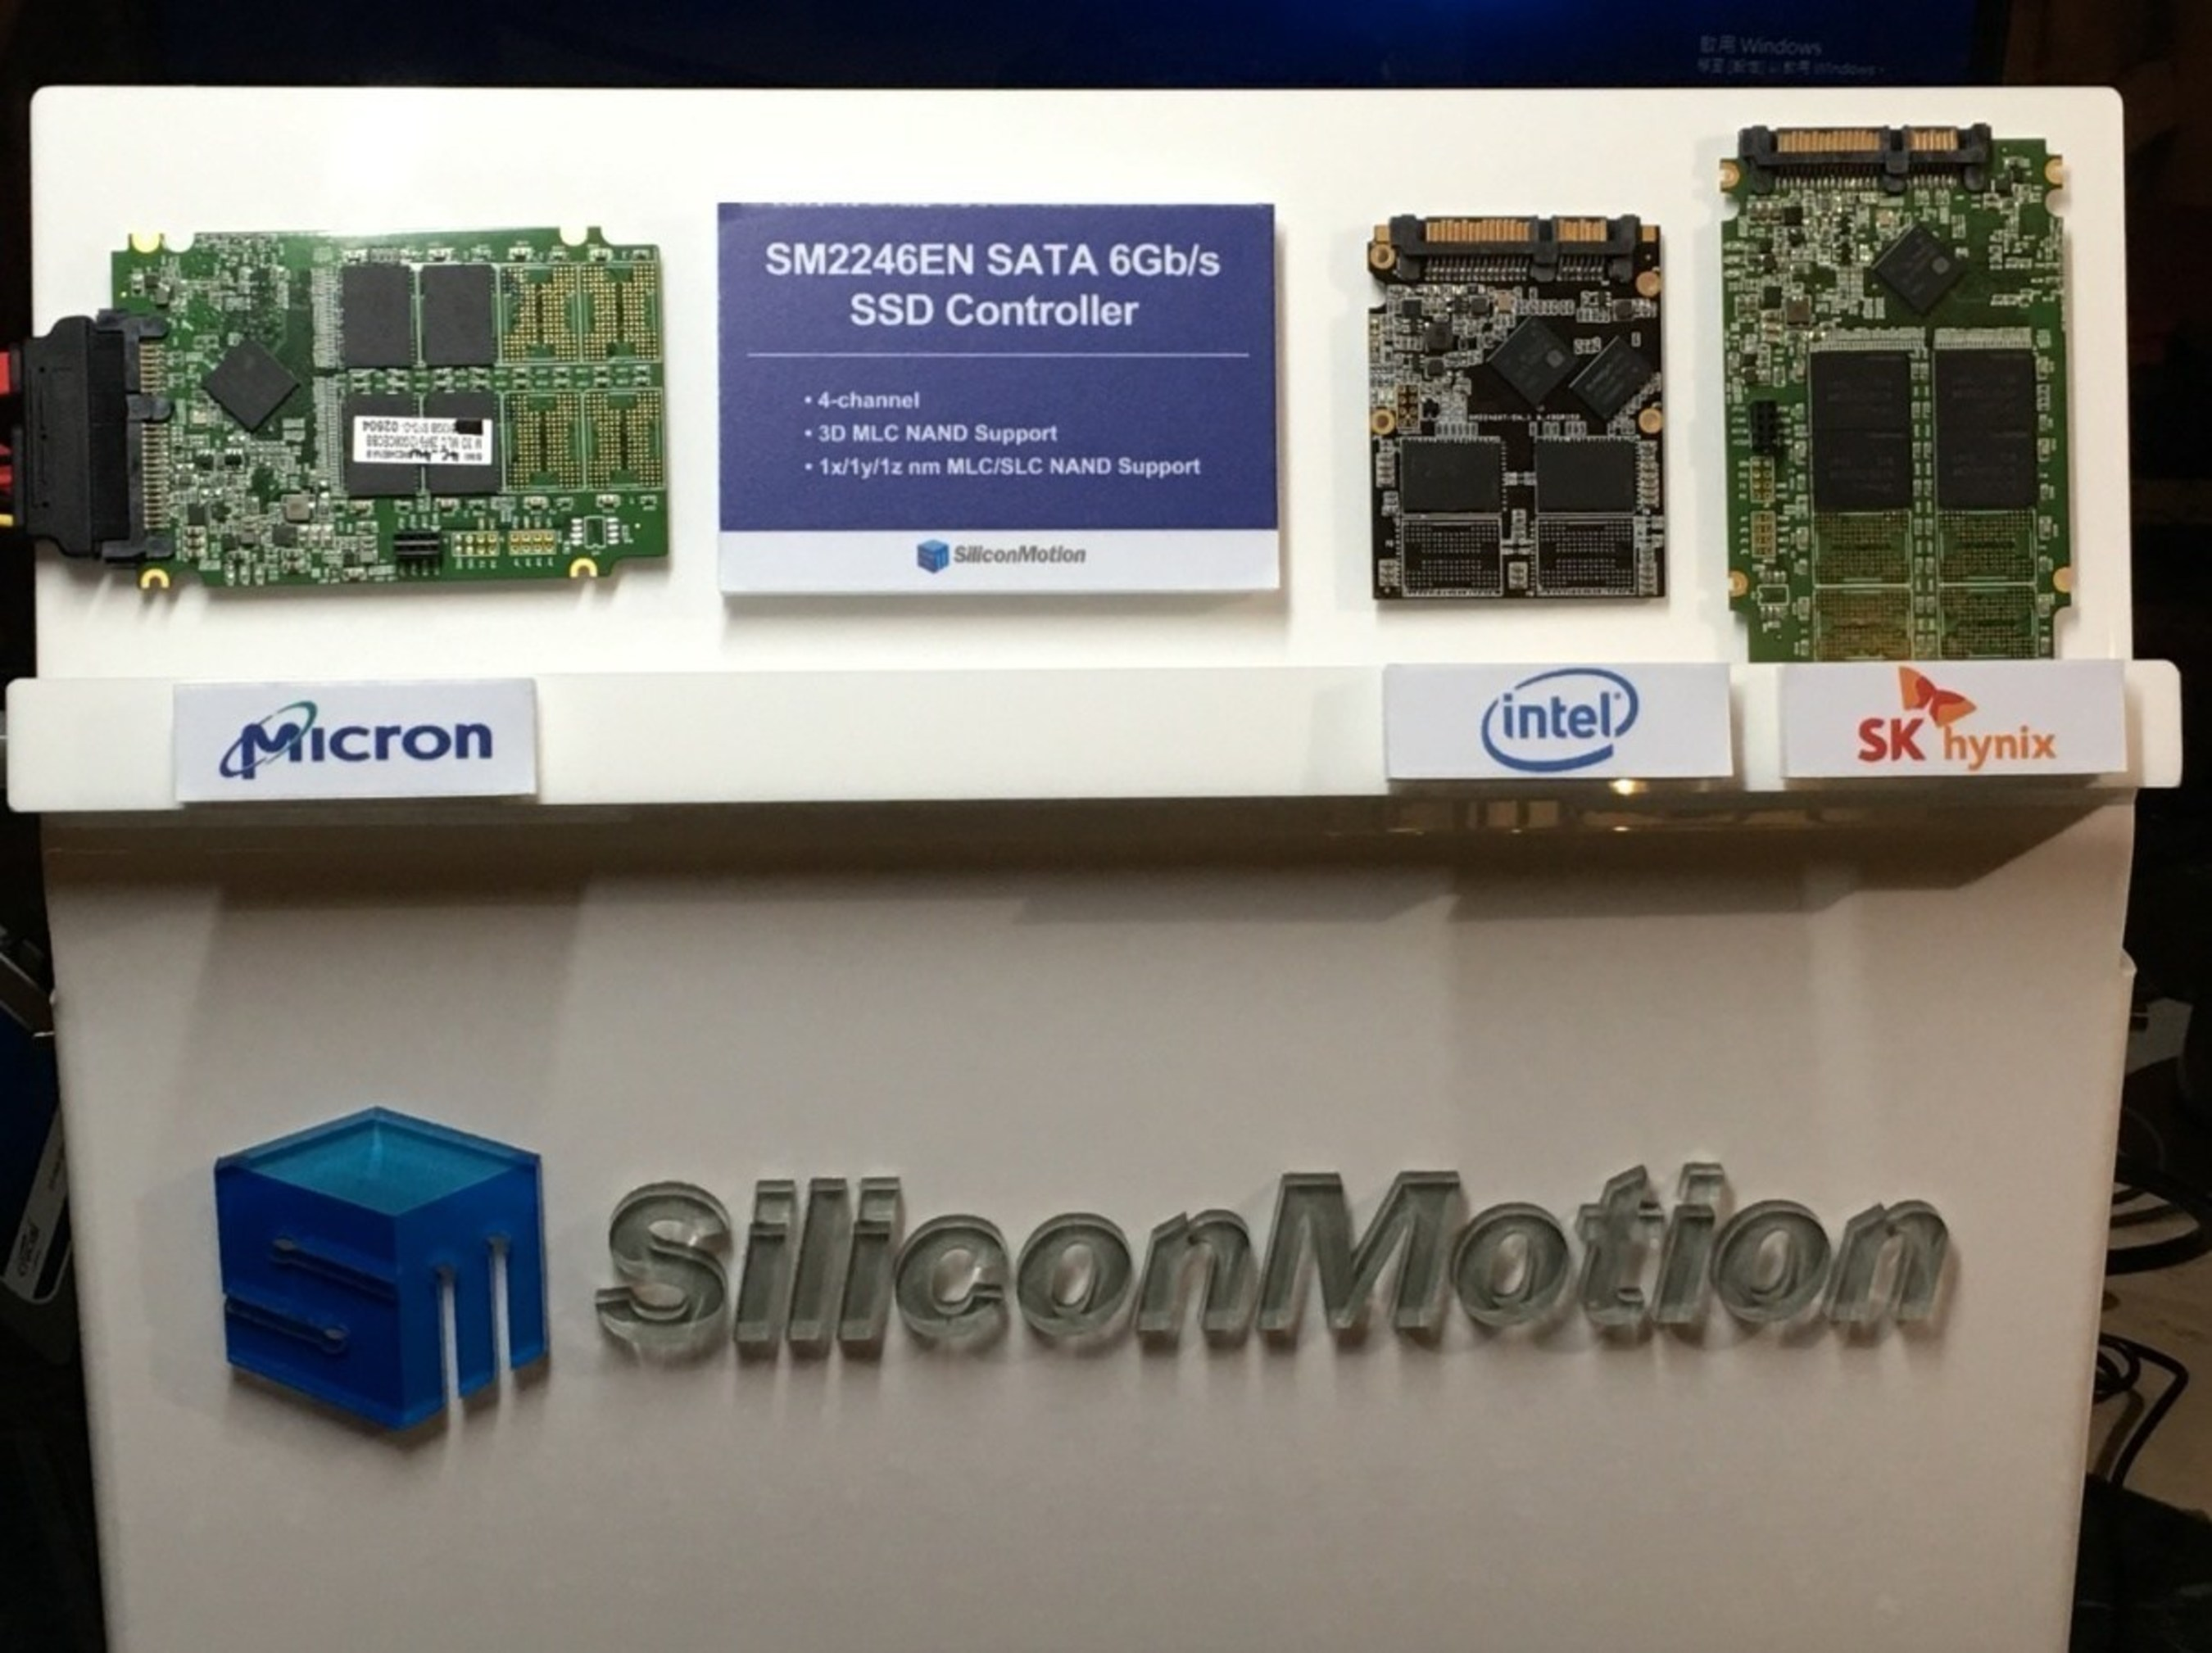 Silicon Motion's SM2246EN turnkey controller solution now supports 3D MLC NAND from multiple vendors.